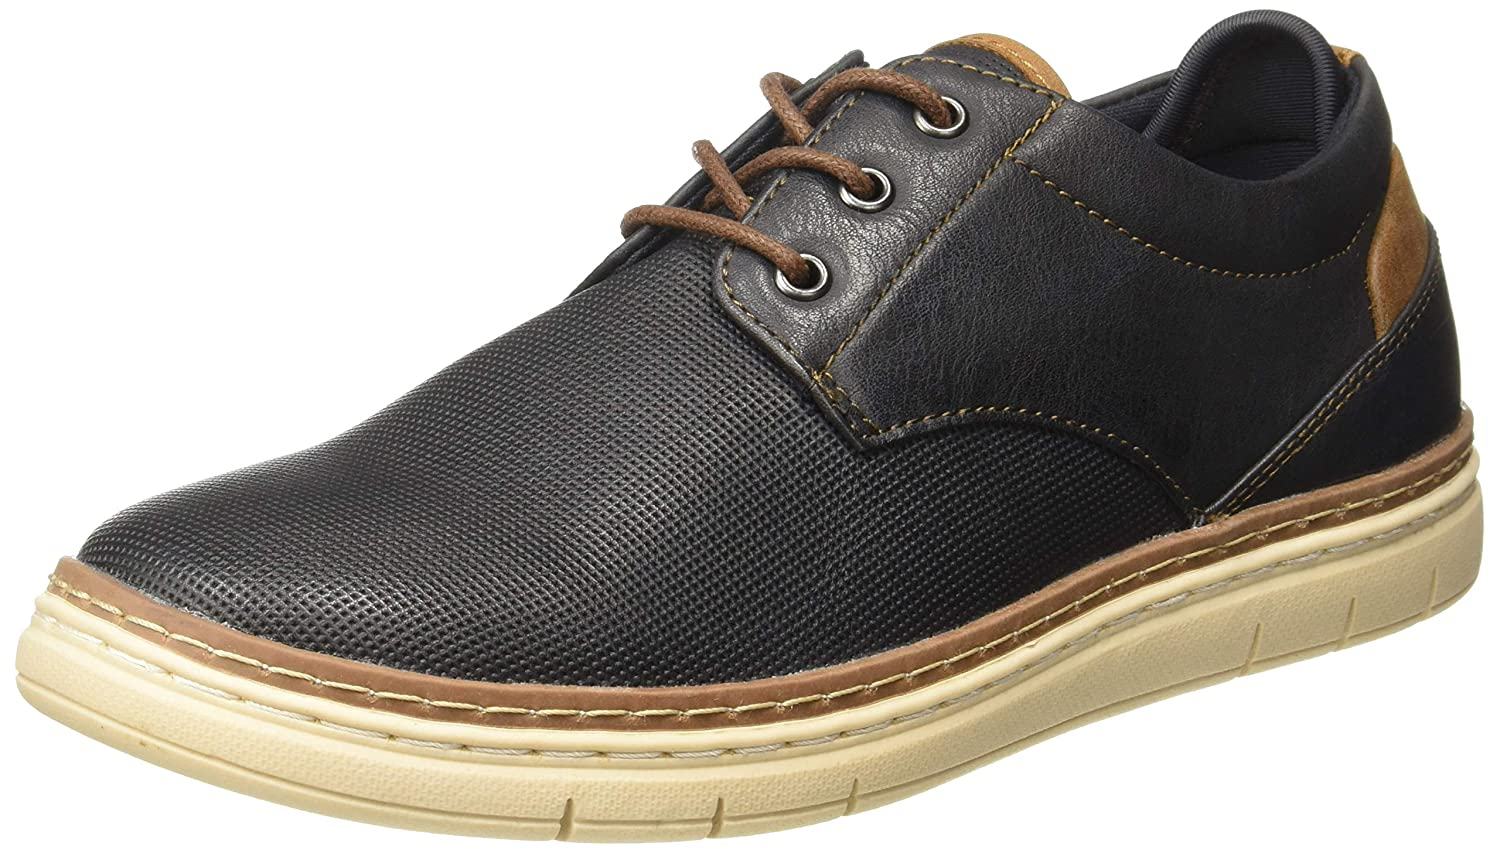 7b8473a0b871 BATA Men s Duke Sneakers  Buy Online at Low Prices in India - Amazon.in